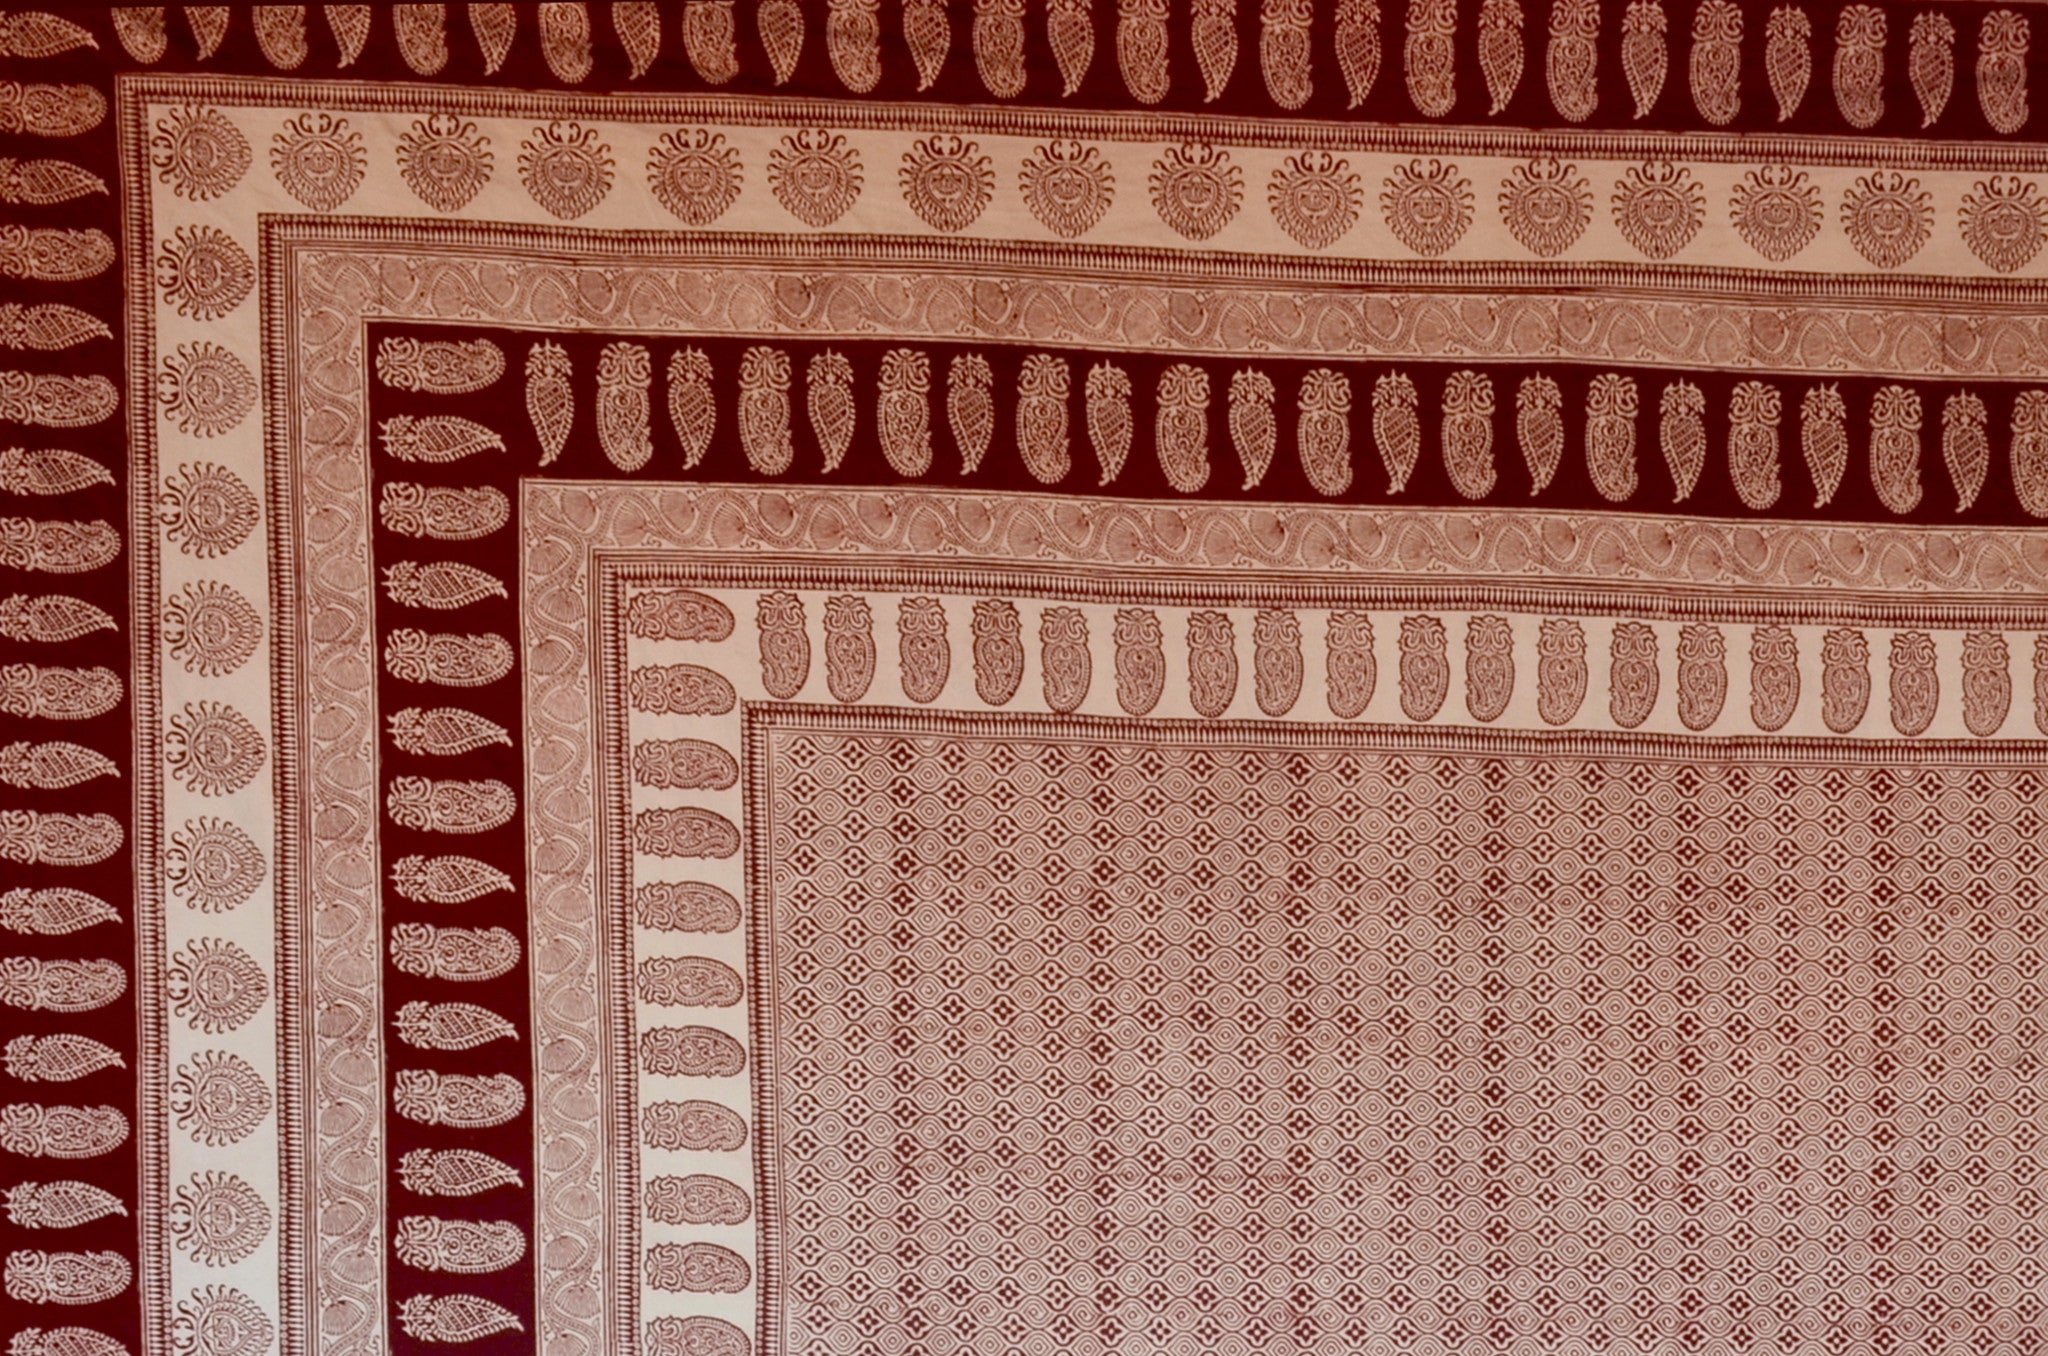 Brown bed sheet textures -  Bagh Printed Bed Sheet Lal10 Com